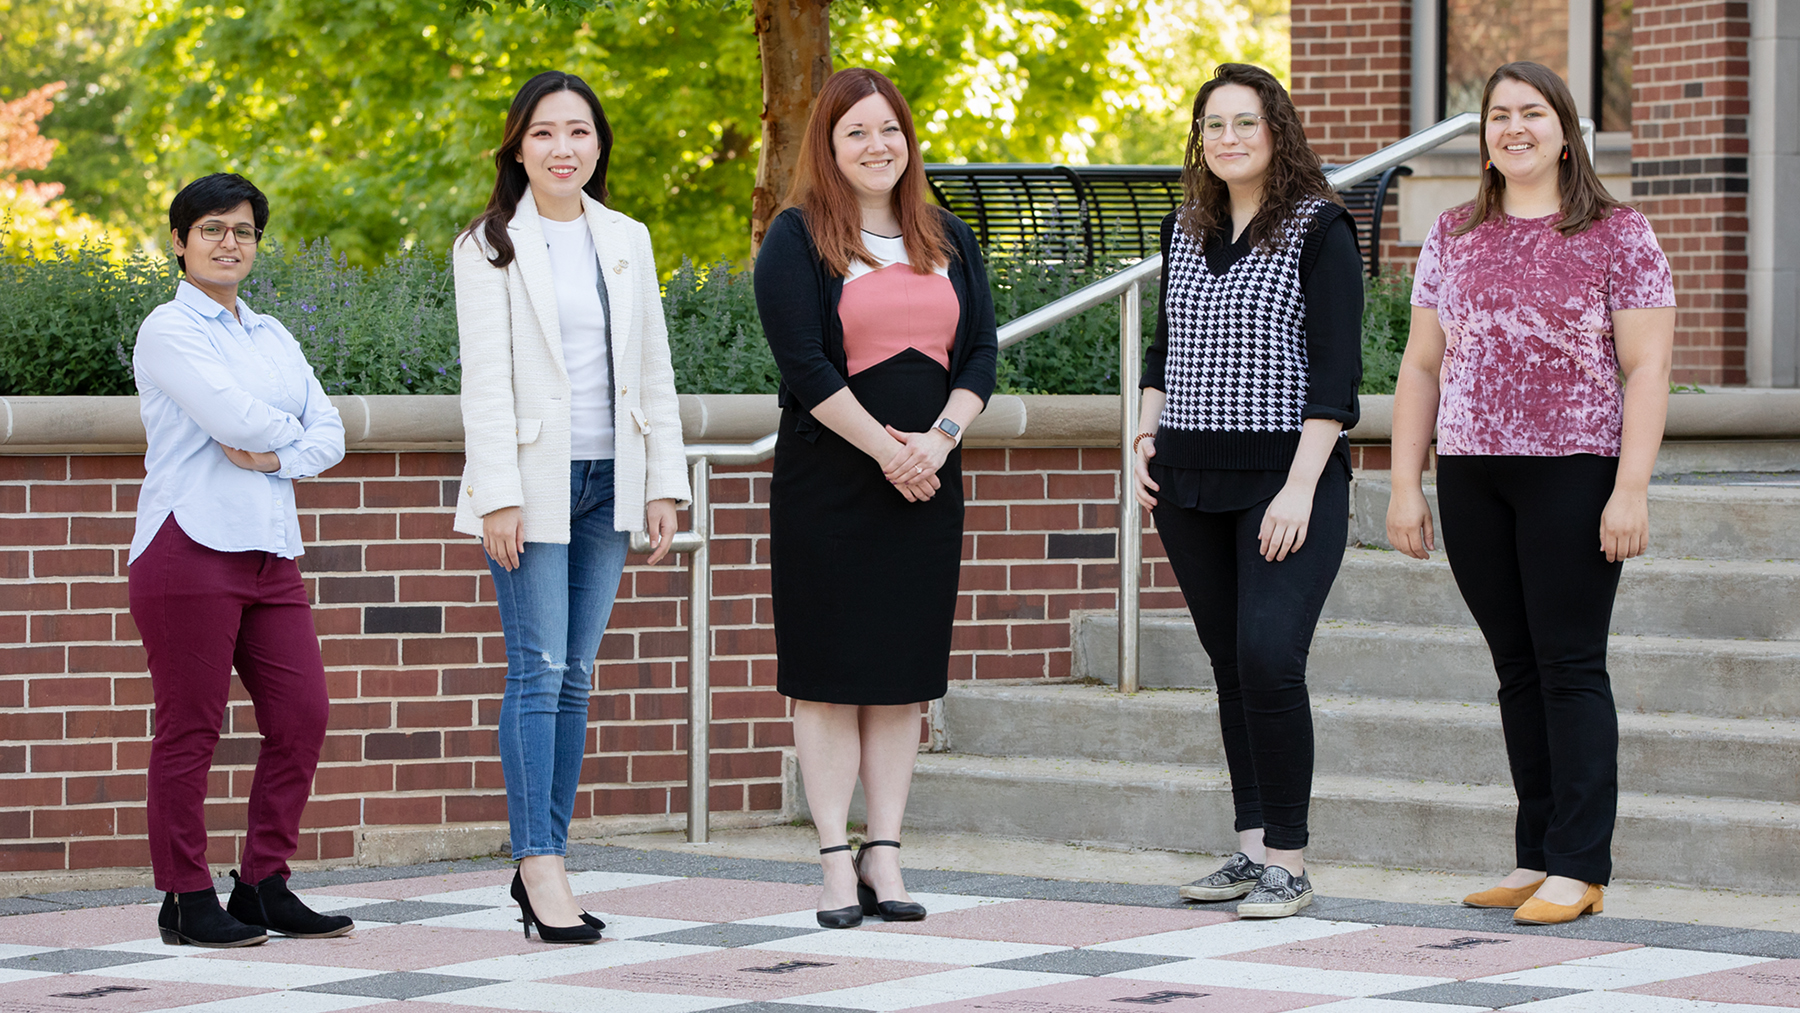 social work professor Rachel Garthe, center. Co-authors of the study were, from left, research biostatistician Amandeep Kaur, Interdisciplinary Health Sciences Institute; and graduate students Shongha Kim, Allyson Blackburn and Agnes Rieger.  Photo by L. Brian Stauffer